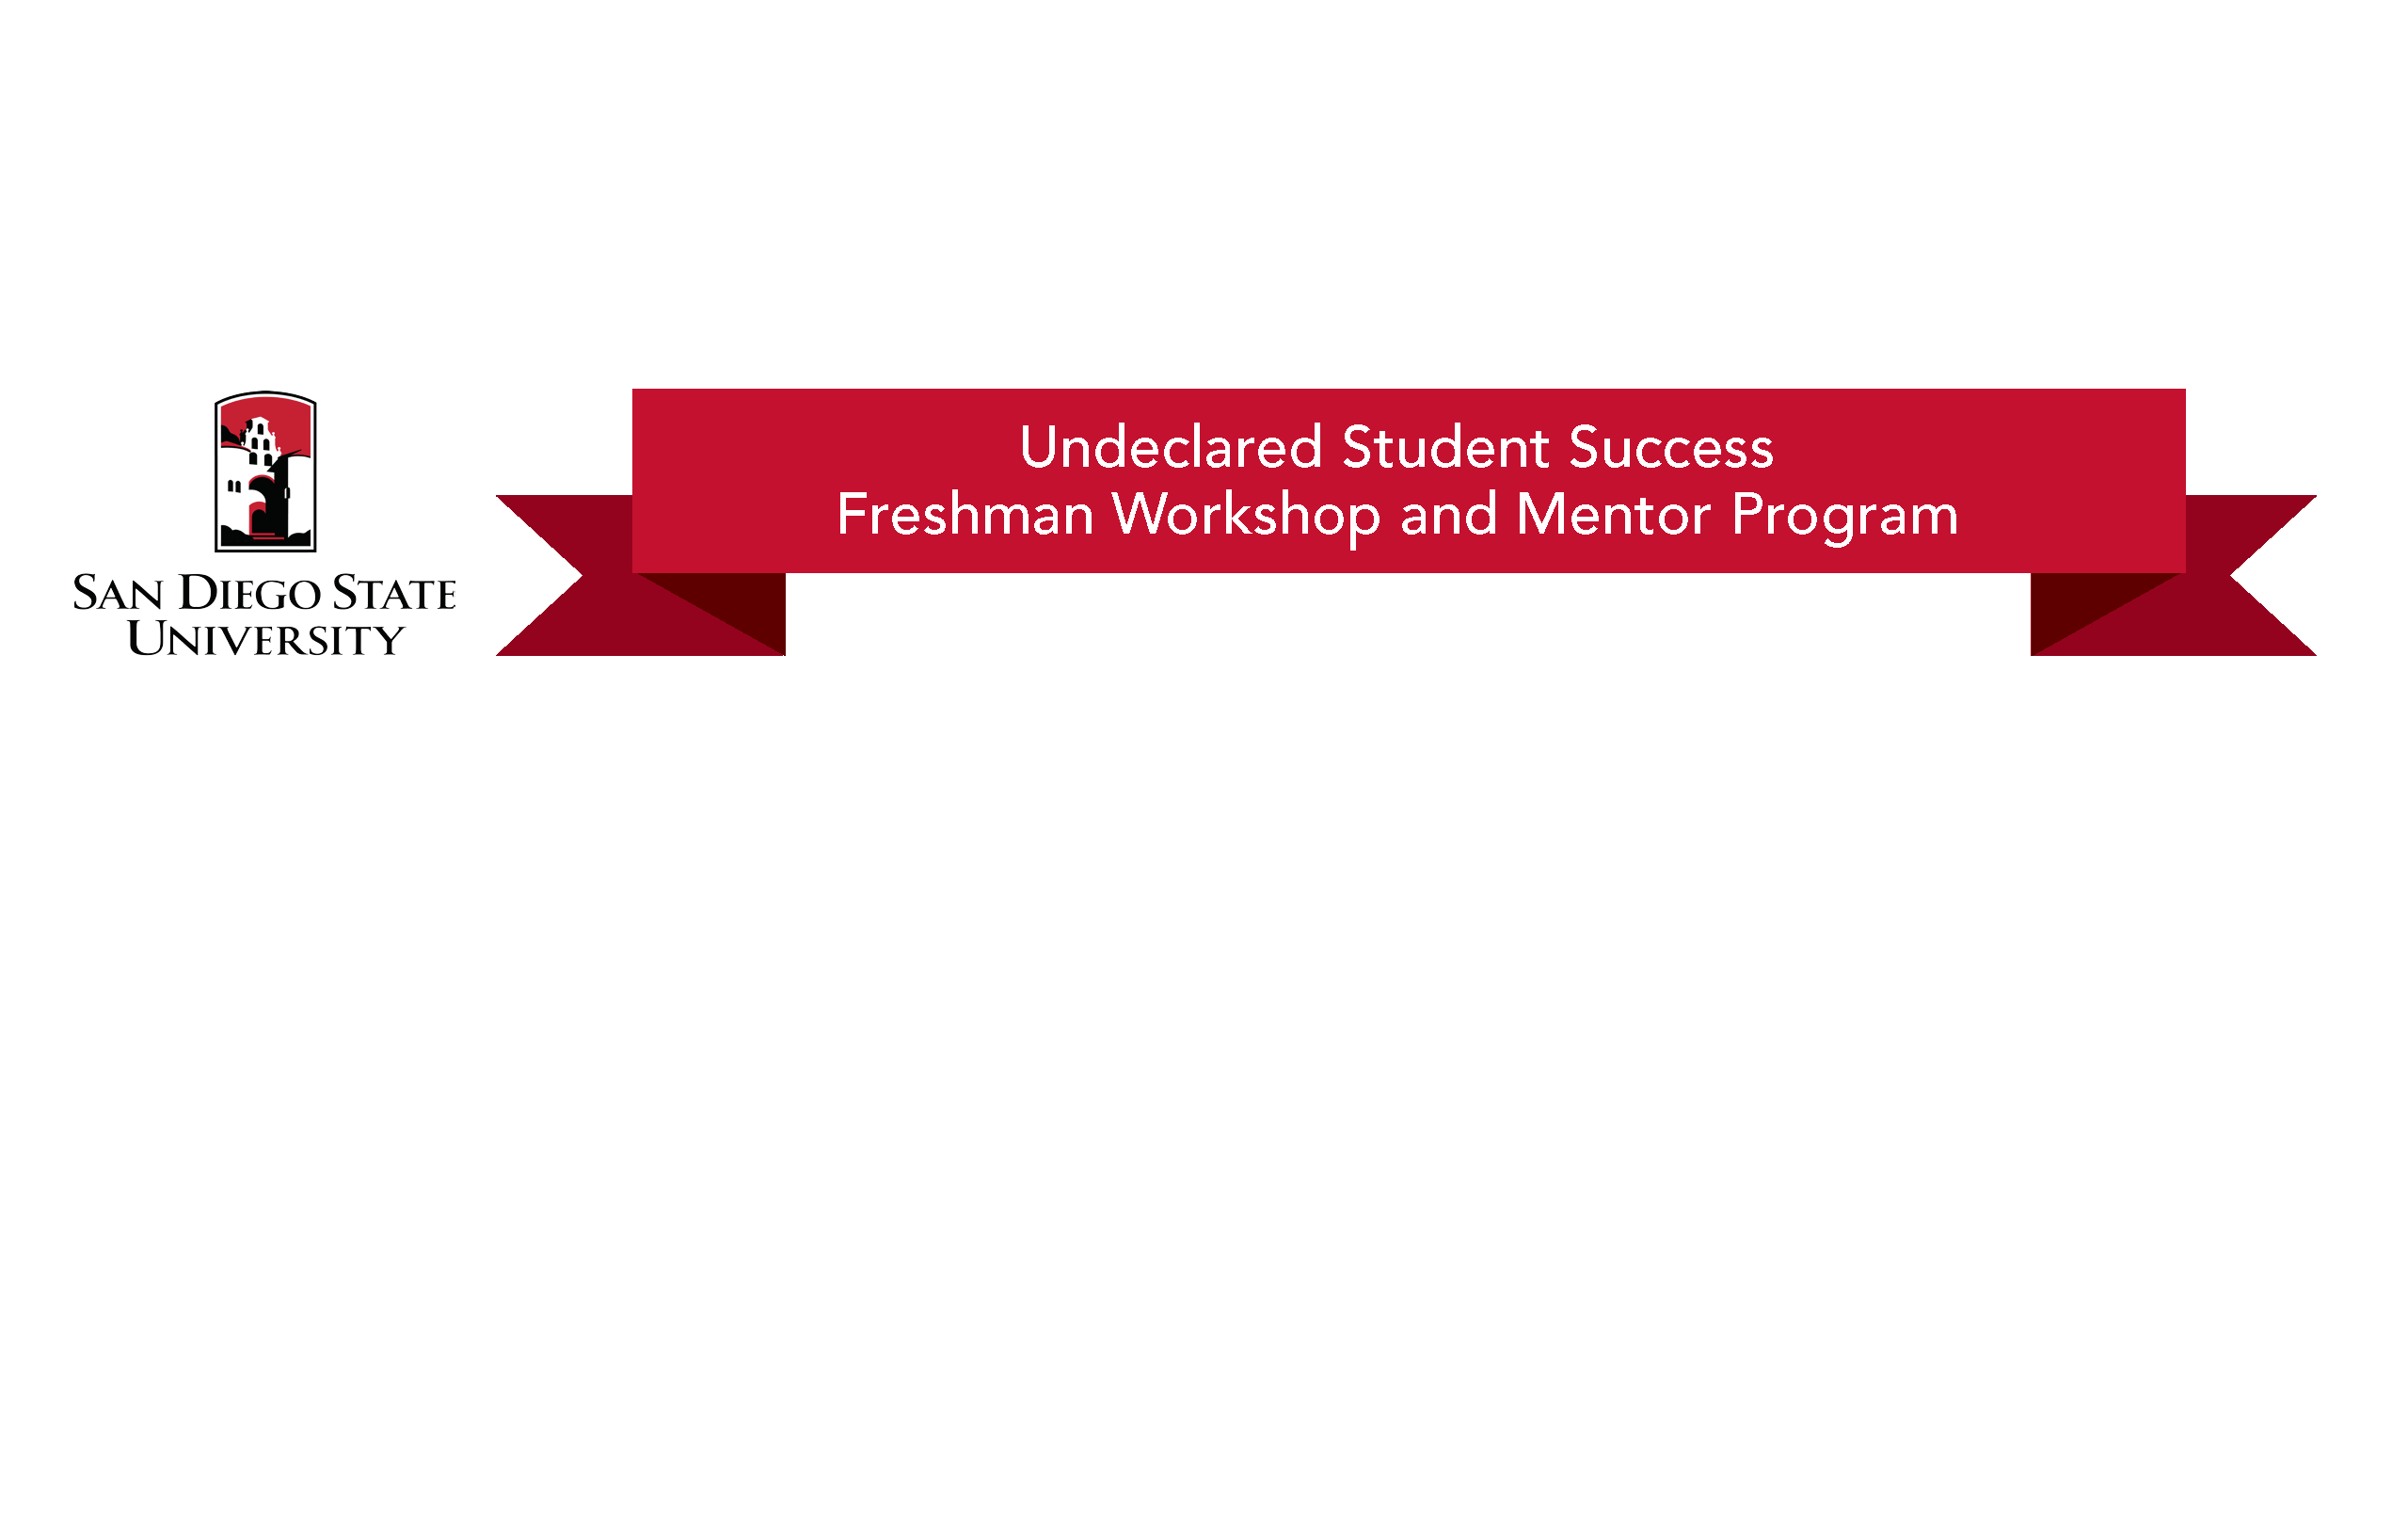 flyer to learn about upcoming Undeclared Student Success Workshops